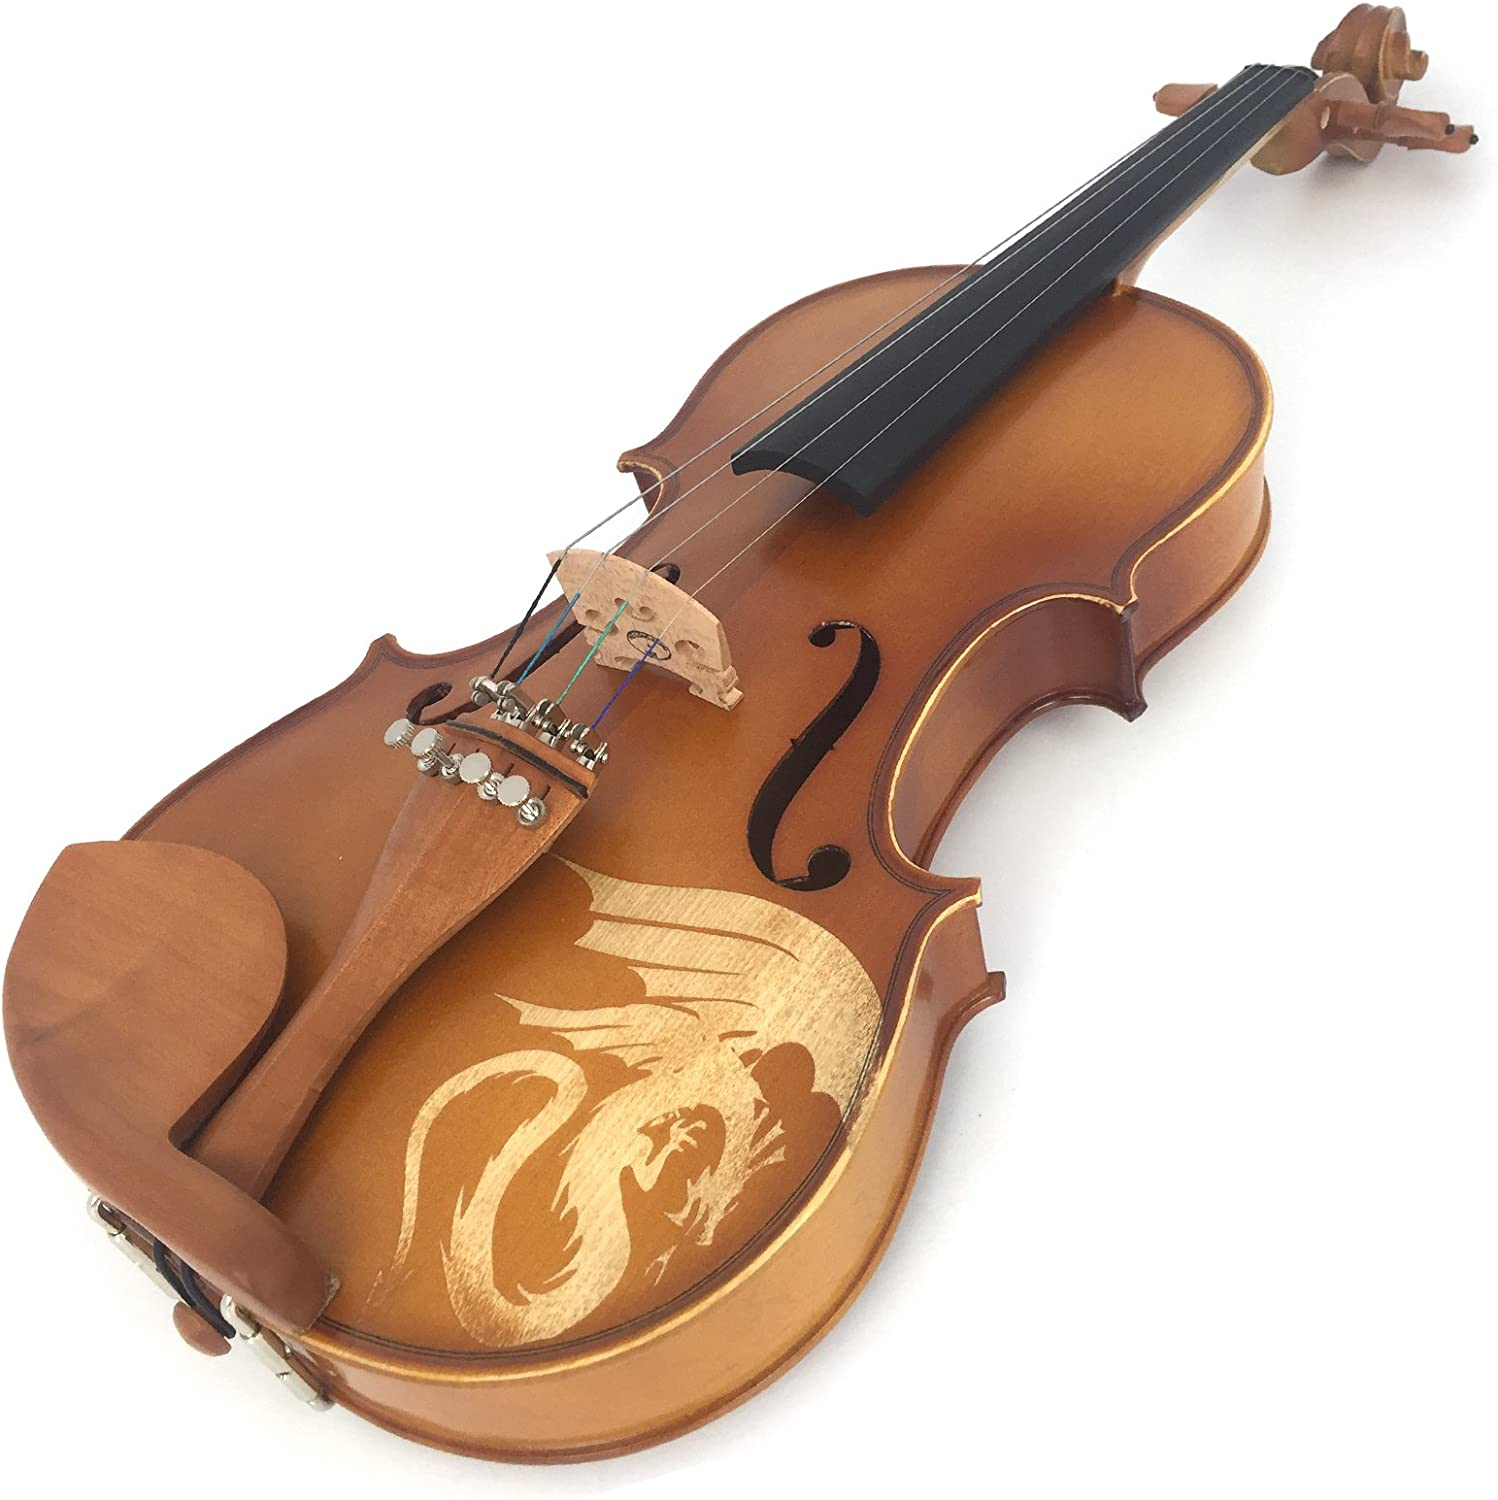 Kinglos 1//2 Flower Carved Ebony Fitted Solid Wood Violin Kit with Case DH003 Shoulder Rest Extra Bridge and Strings Rosin Bow